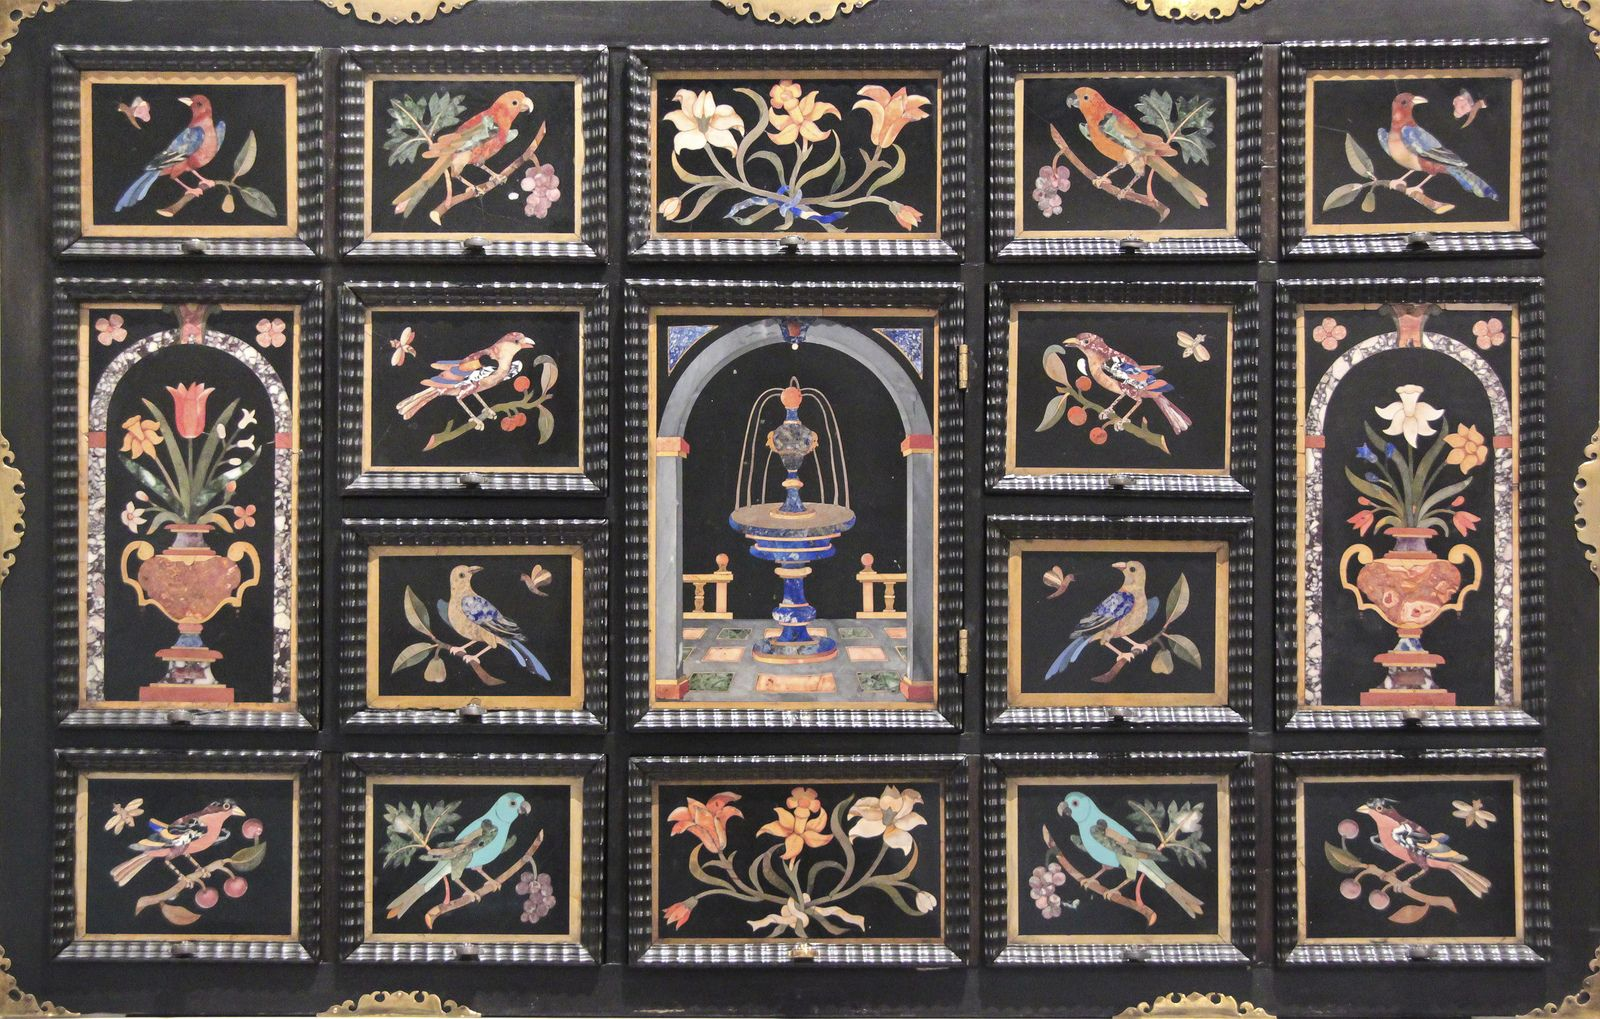 Cabinet, about 1650, using panels of 1600-50, cabinet-Northern Europe, panels-Florence-Italy | Flickr - Photo Sharing!